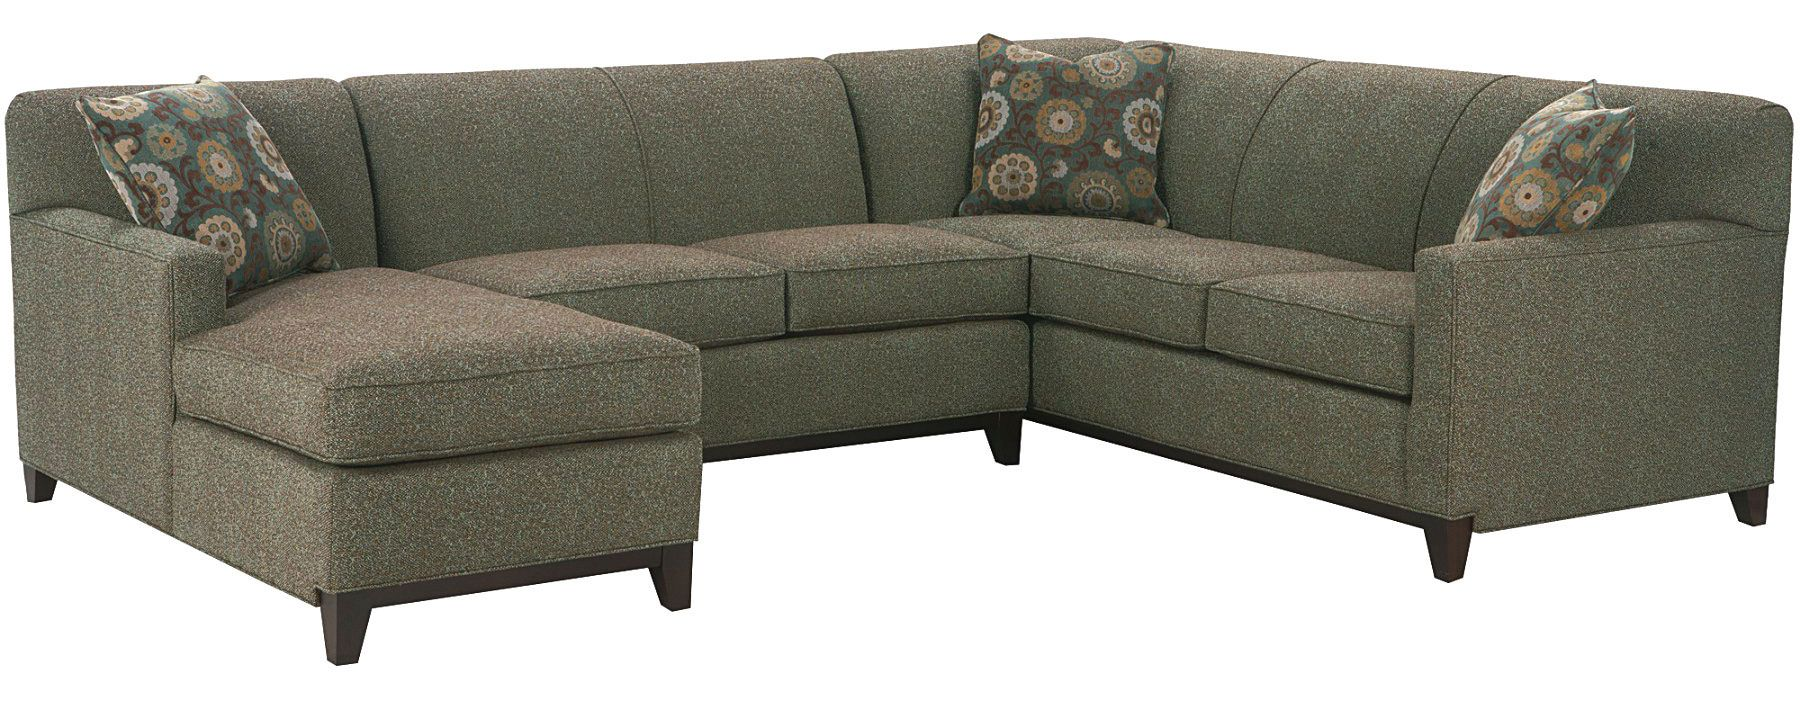 Tight back sectional sofa w track arm choose your upholstery club furniture